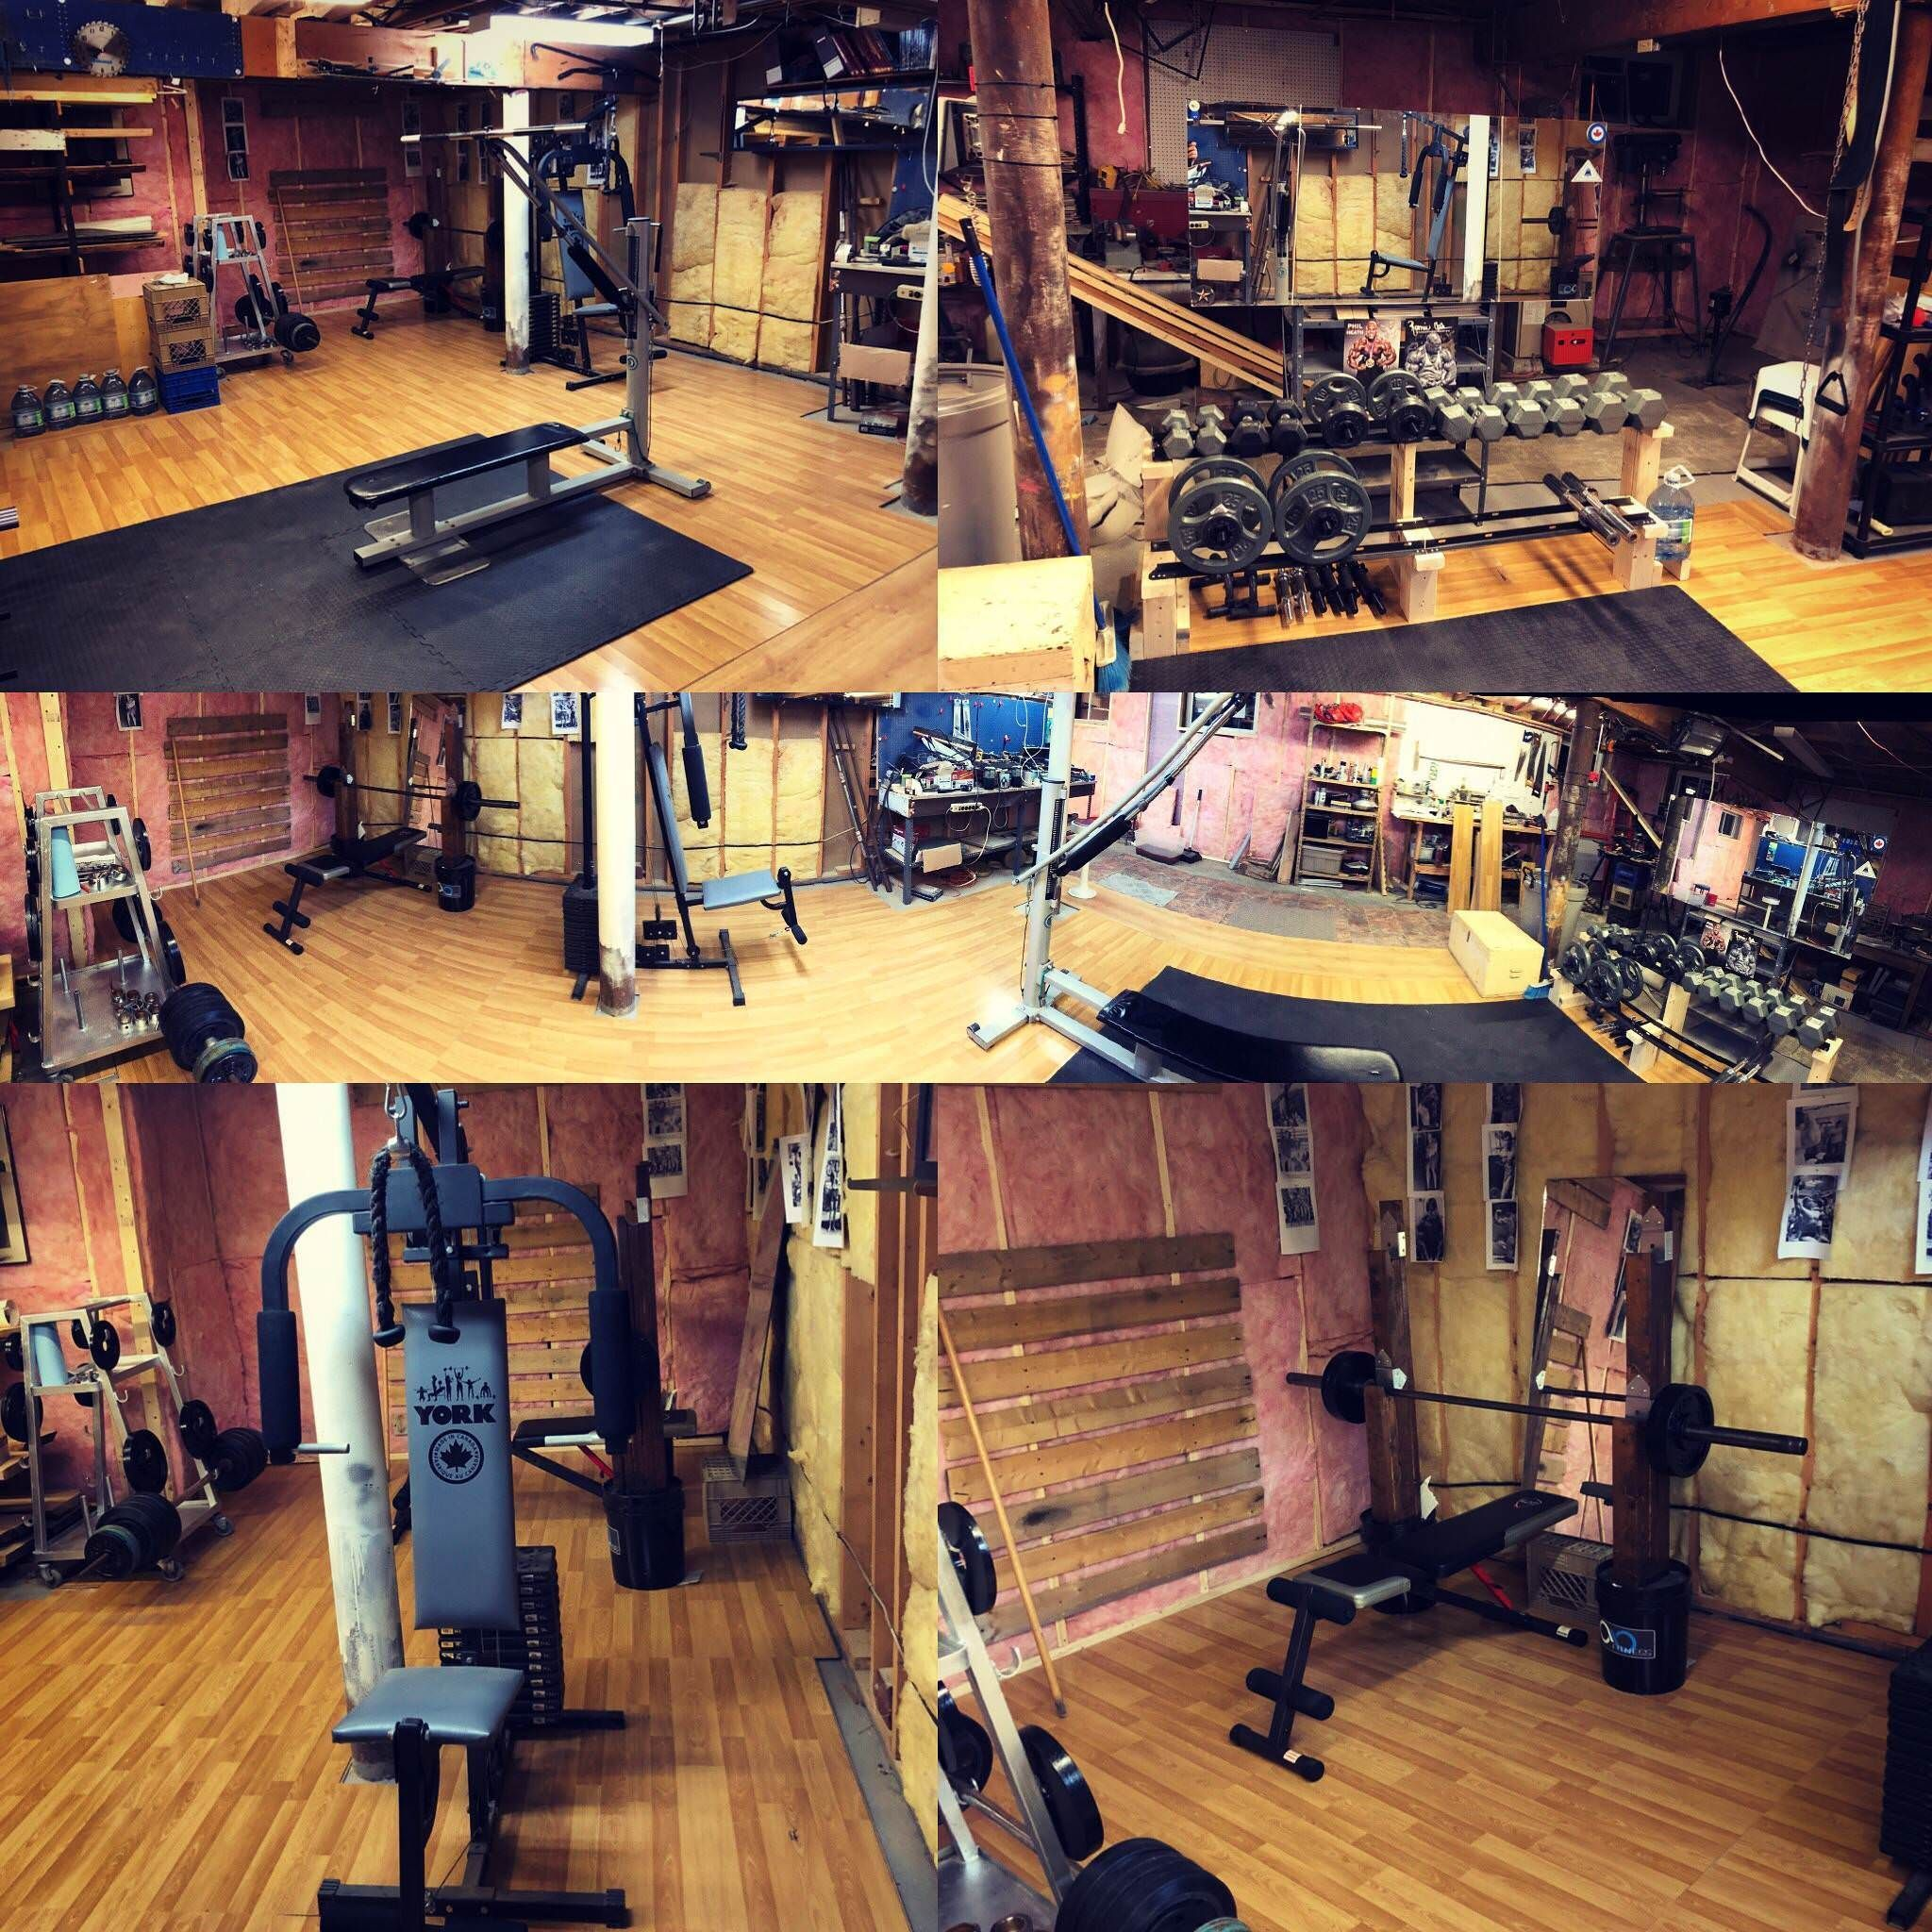 My DIY Basement Gym #basementhomegymsmall (With Images